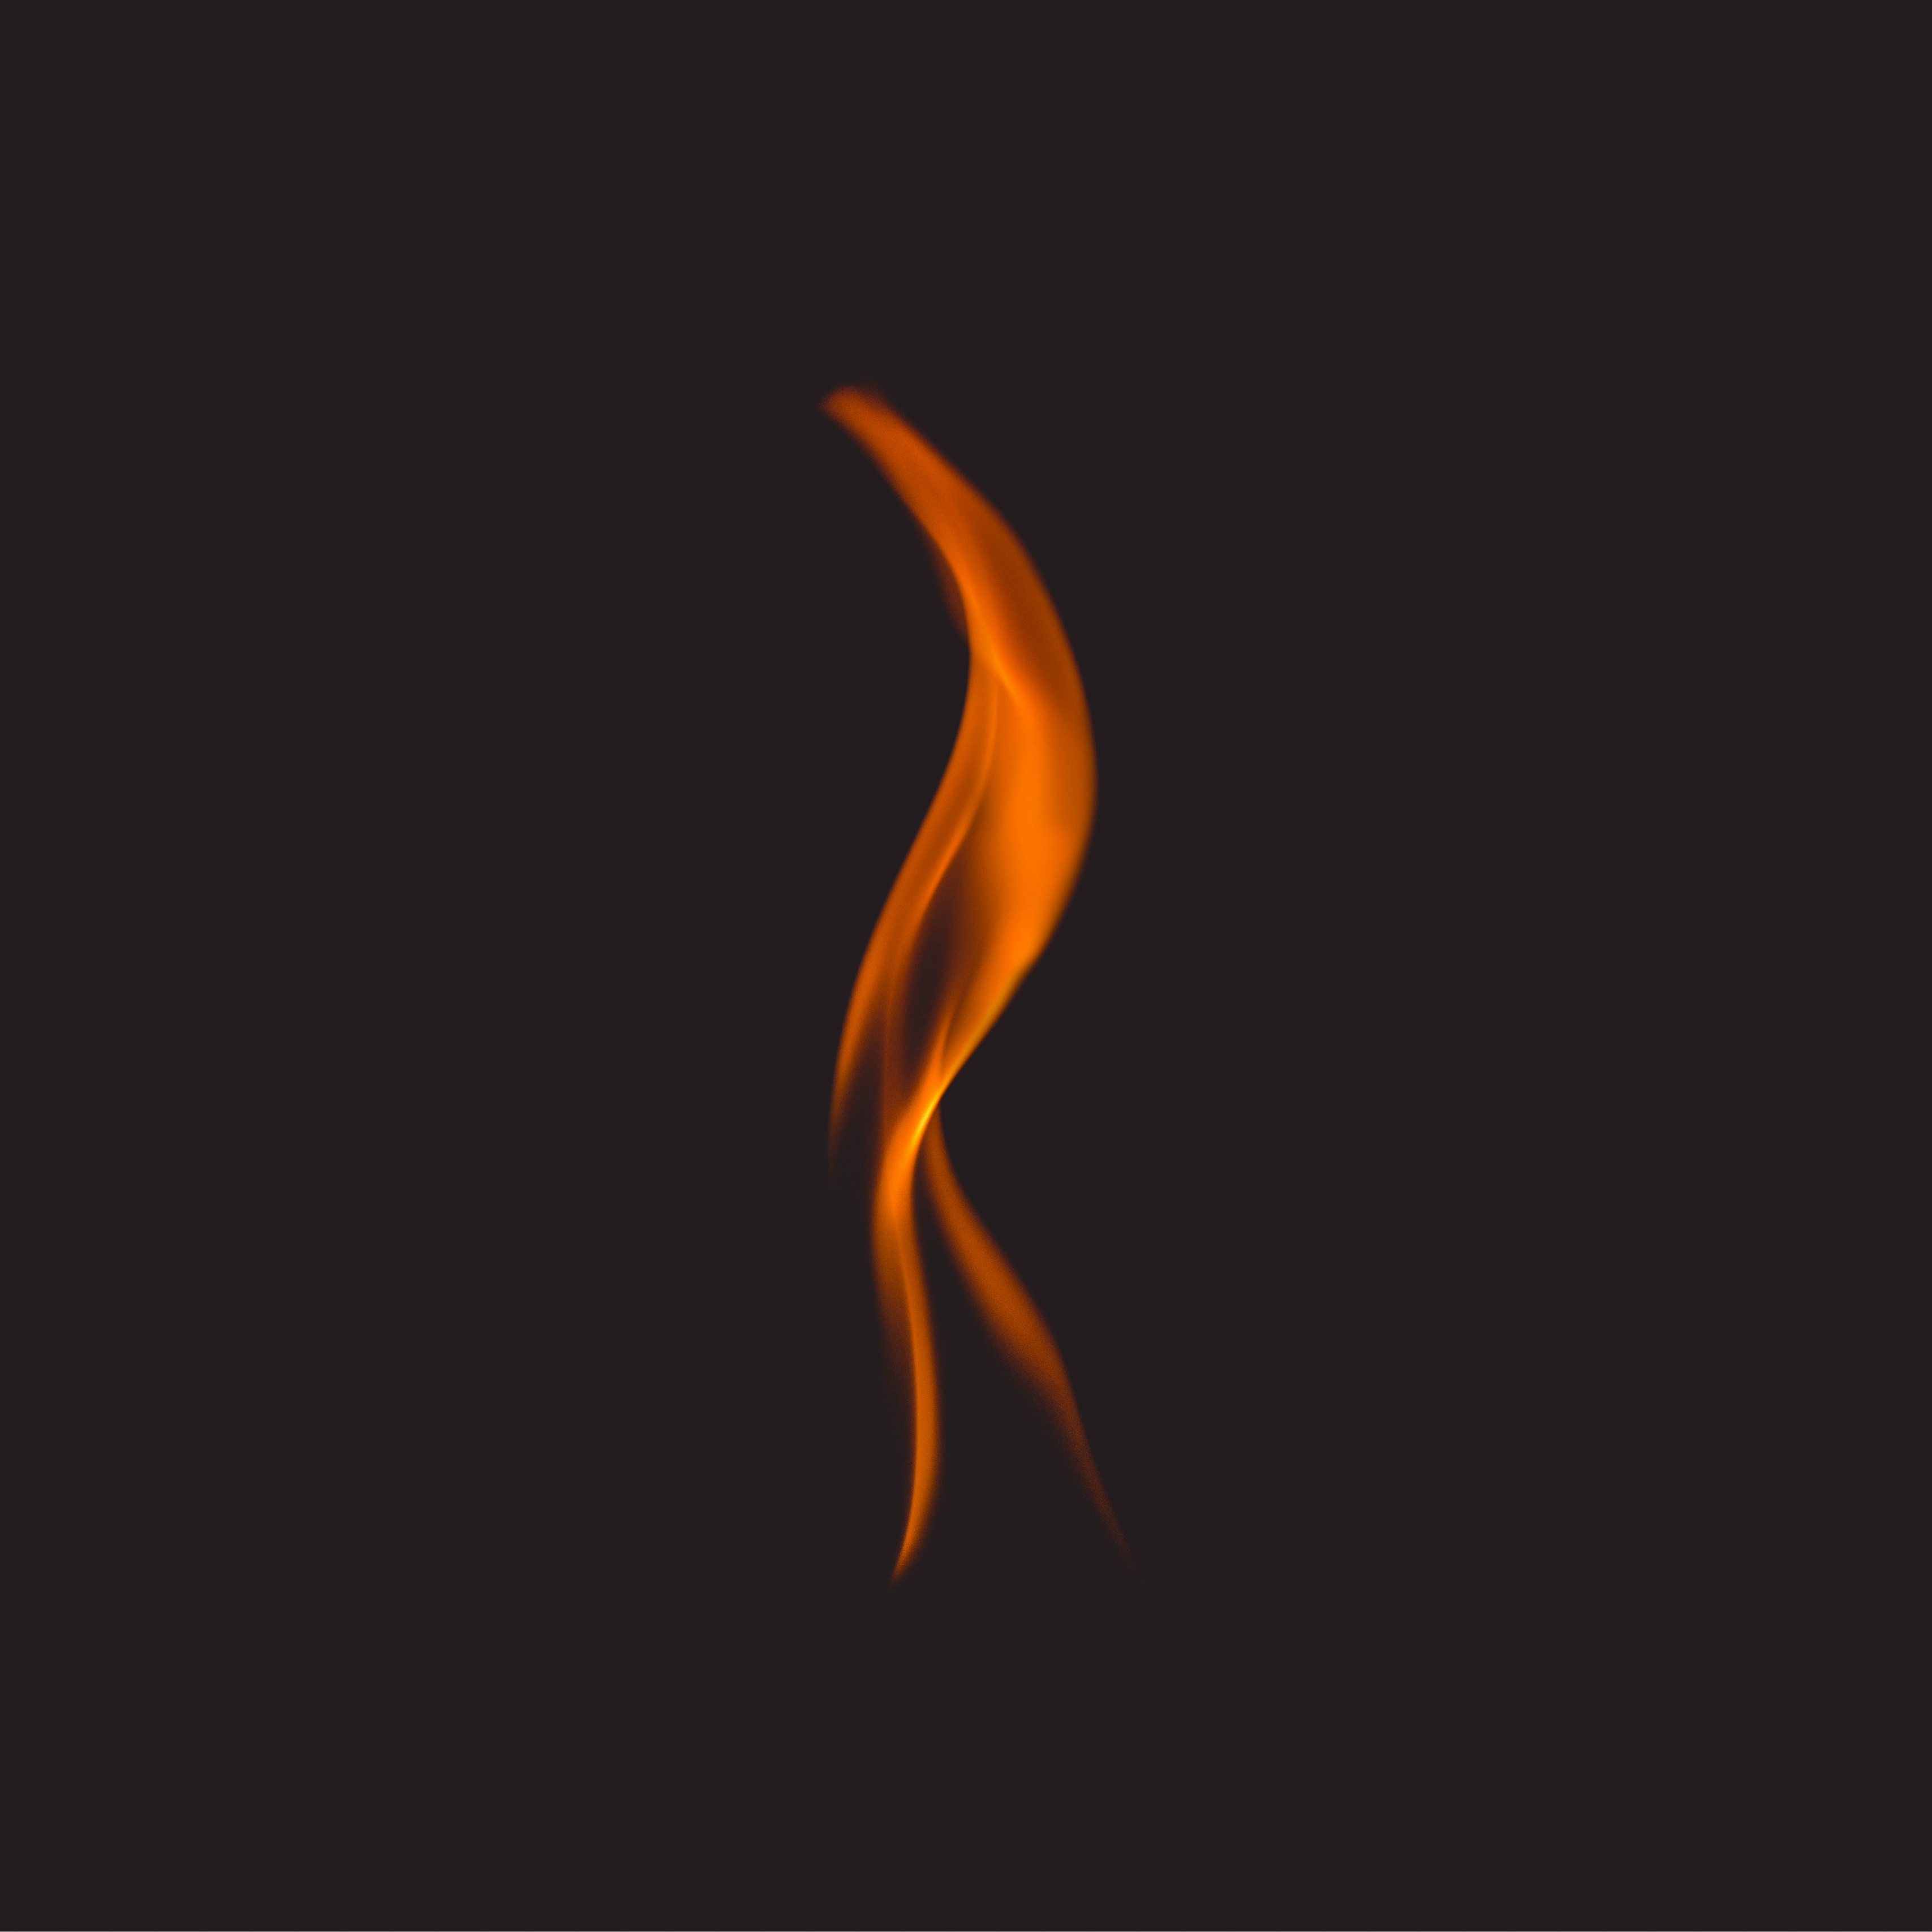 Black Fire Wallpaper Posted By Sarah Tremblay